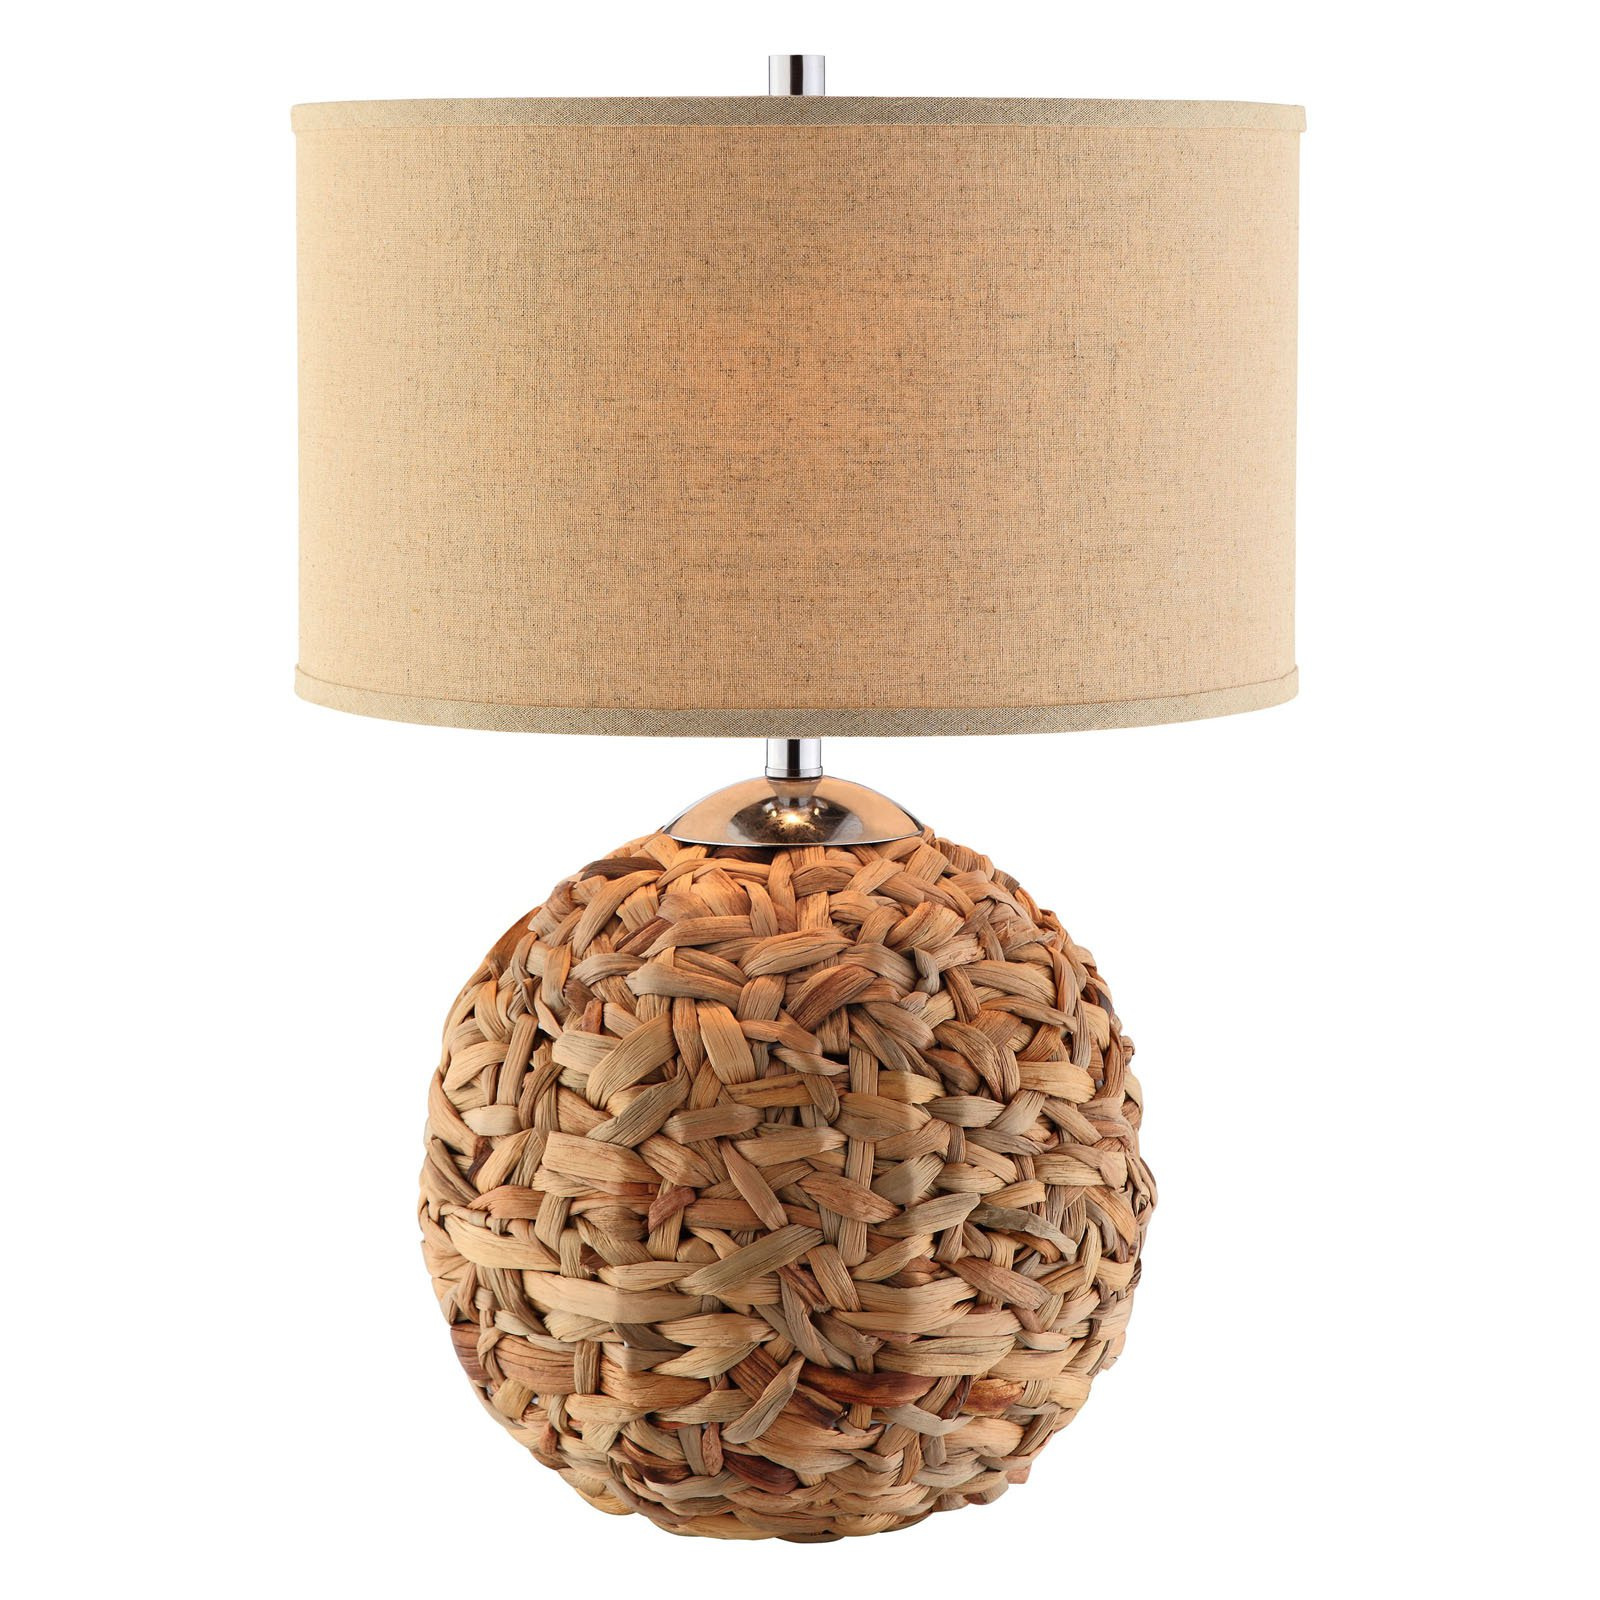 rattan table lamps photo - 3